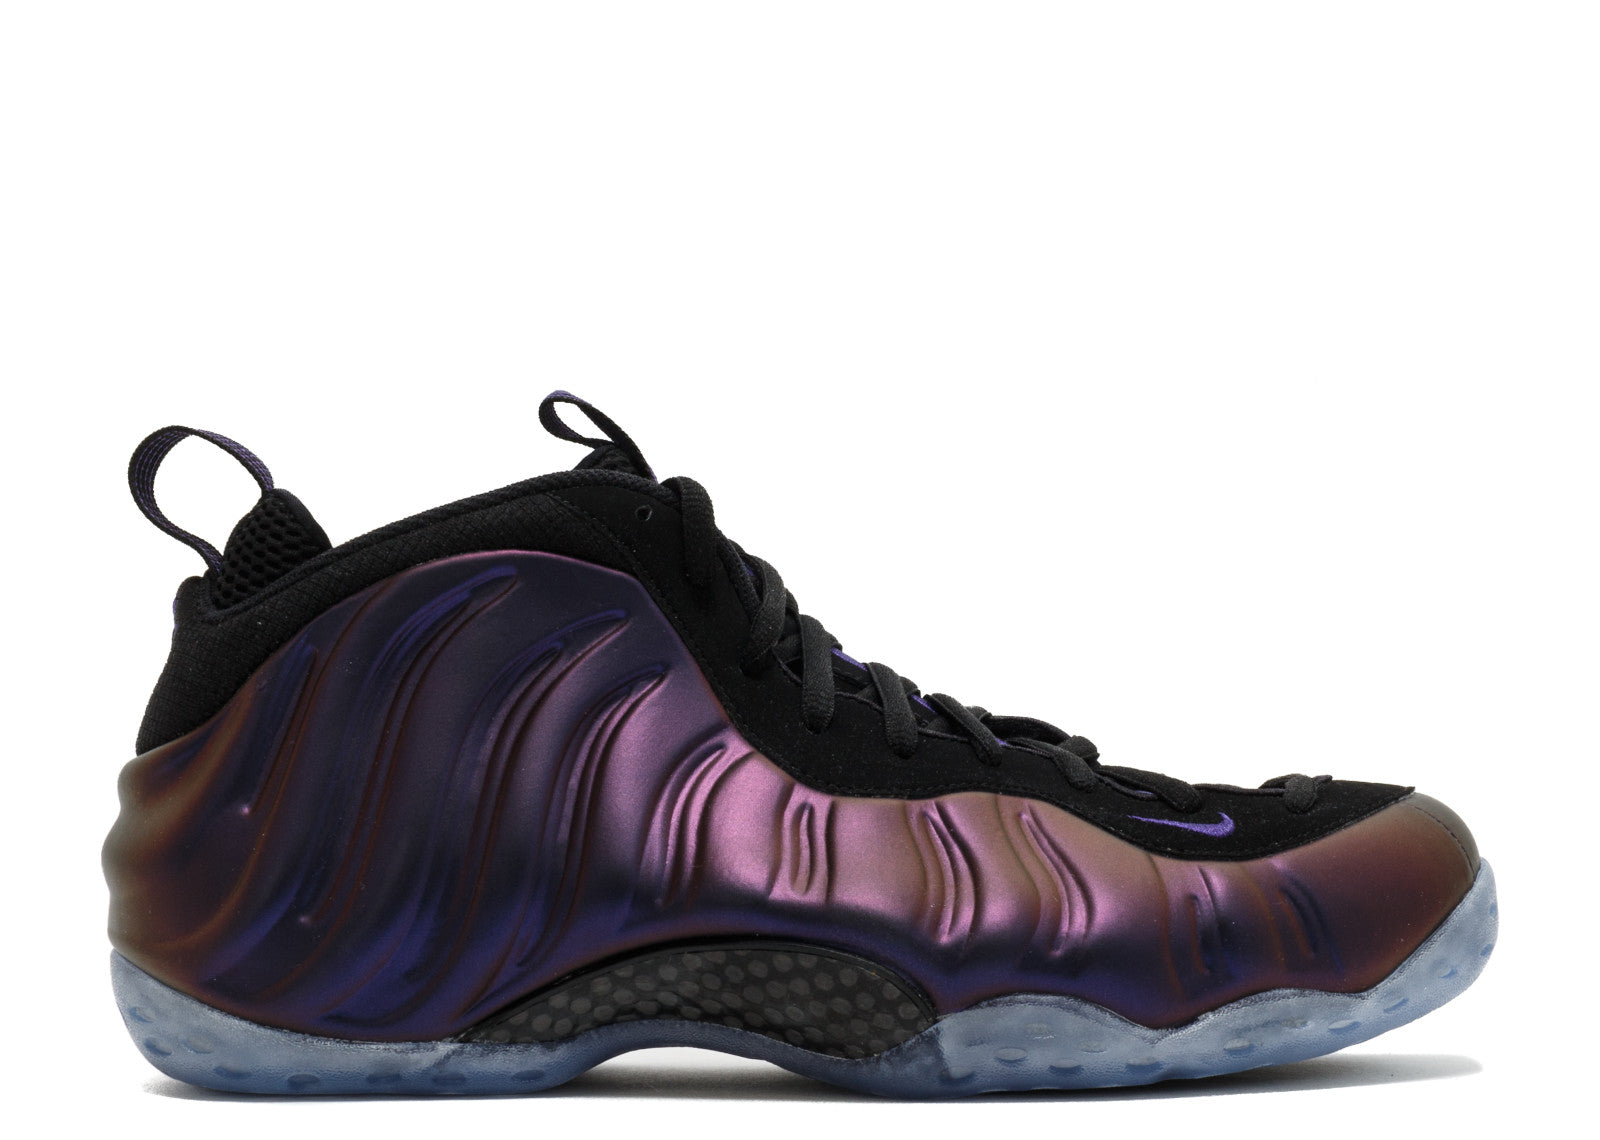 separation shoes ae69f 2c815 ... best price nike foamposites eggplant nike foamposites eggplant 9087d  0d3d7 ...